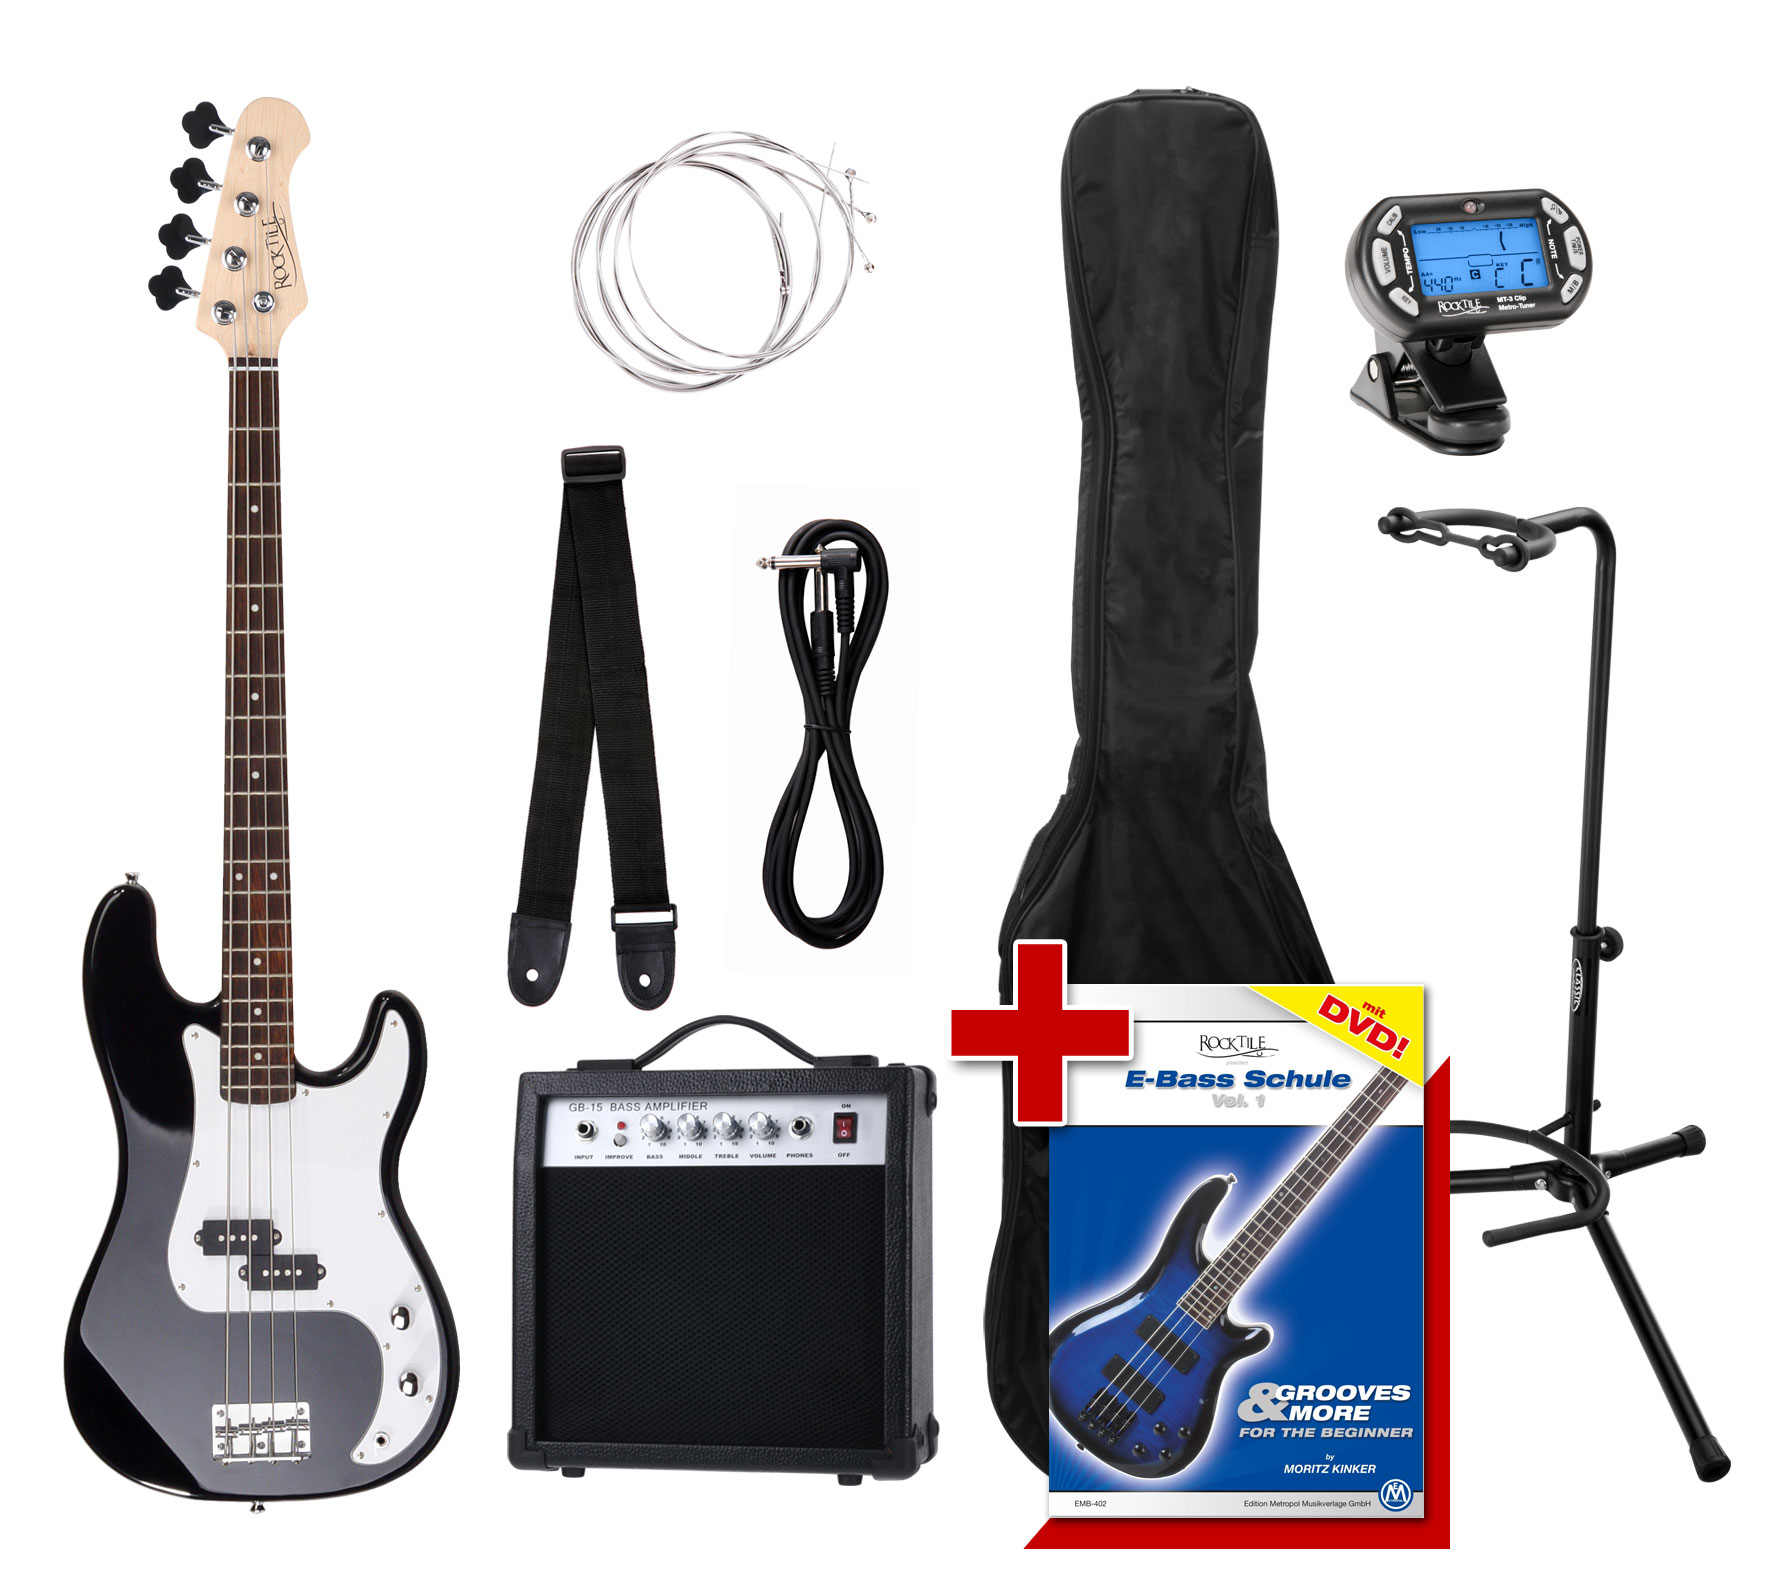 Ebaesse - Rocktile Groover's Pack PB E Bass Black Set III - Onlineshop Musikhaus Kirstein